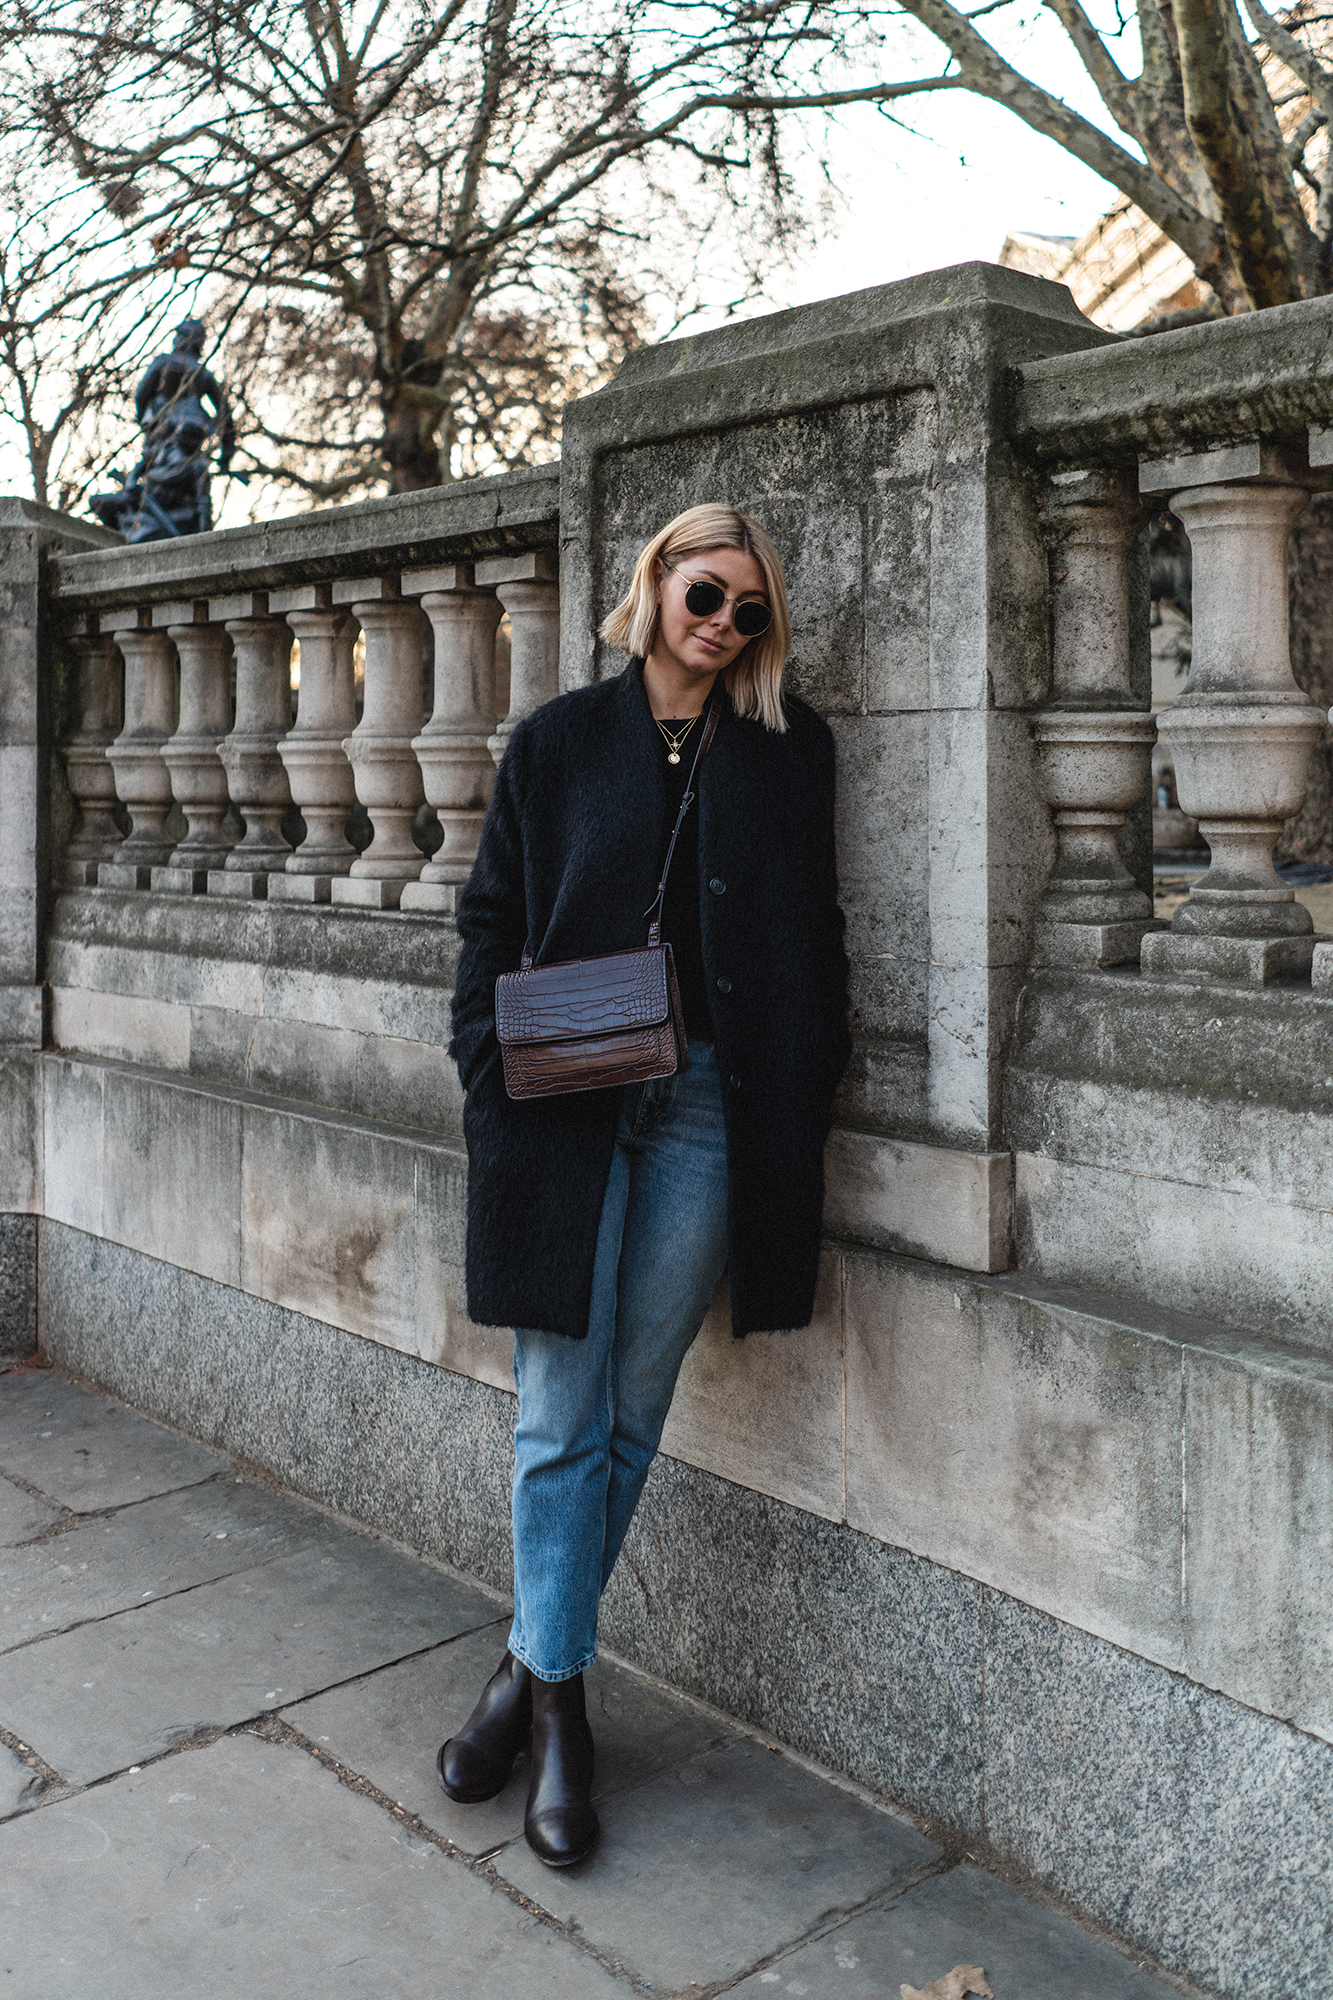 Black coat, brown croc crossbody bag, chelsea boots and mid wash jeans